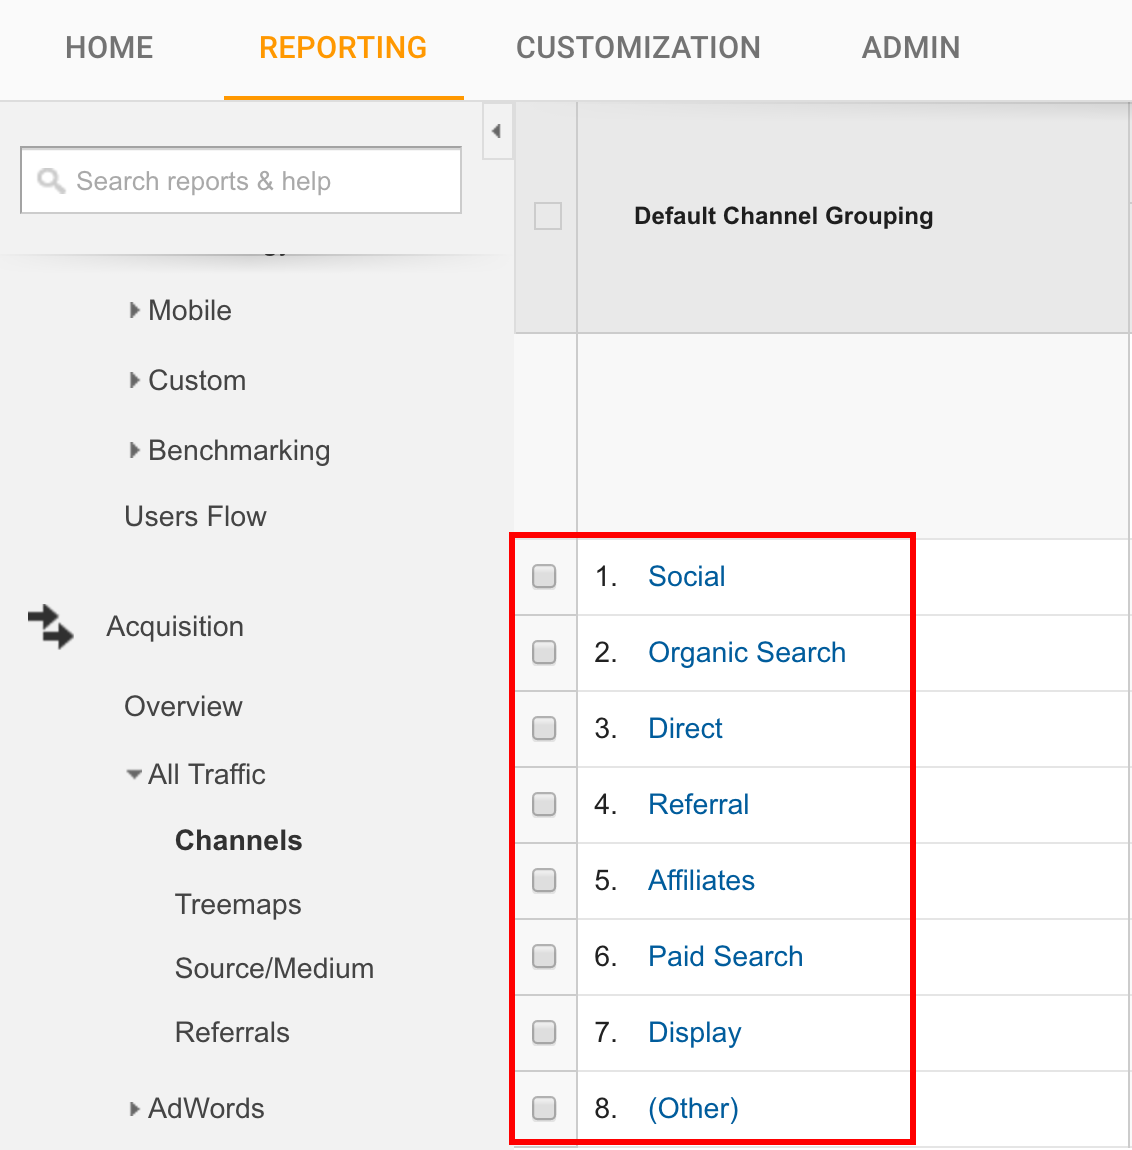 google-analytics-content-marketing-channel-groupings.png